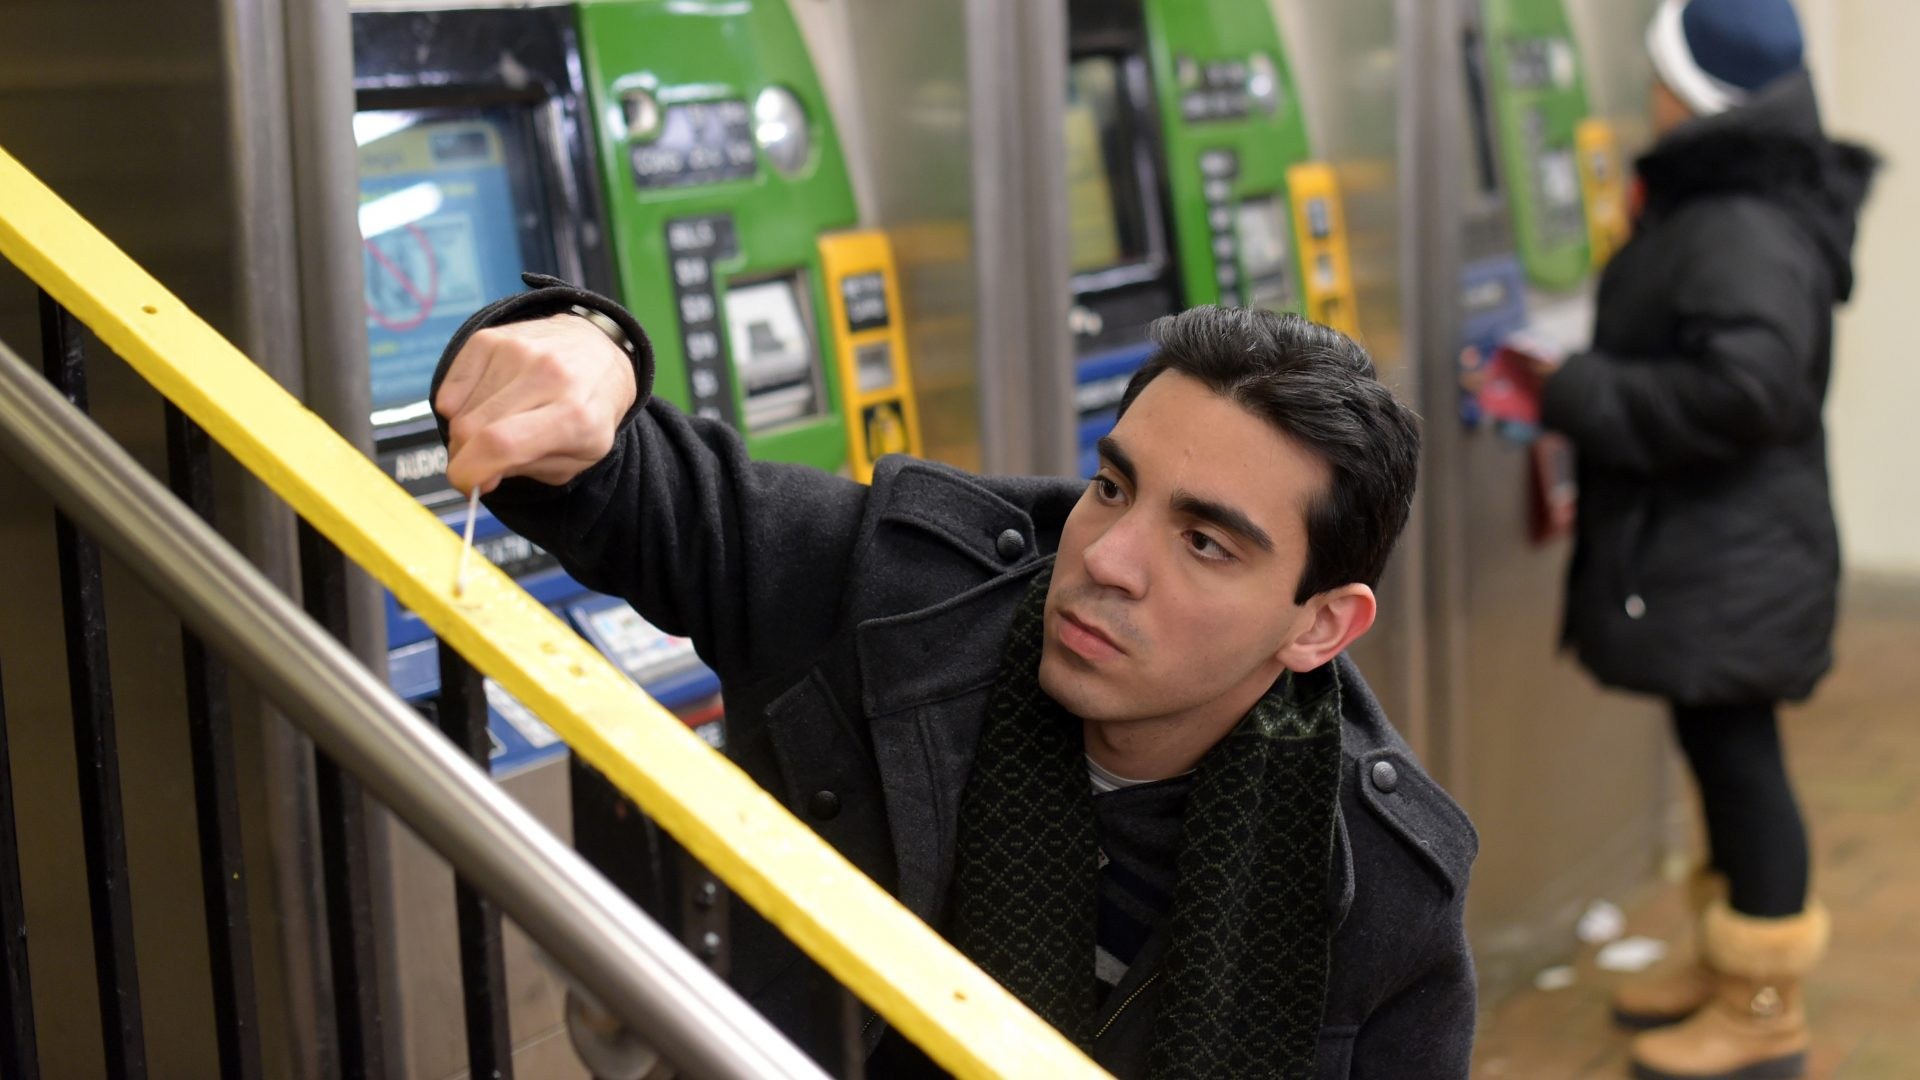 Photo of Macaulay student, Ebrahim Afshinnekoo, taking sample for his research at the train station